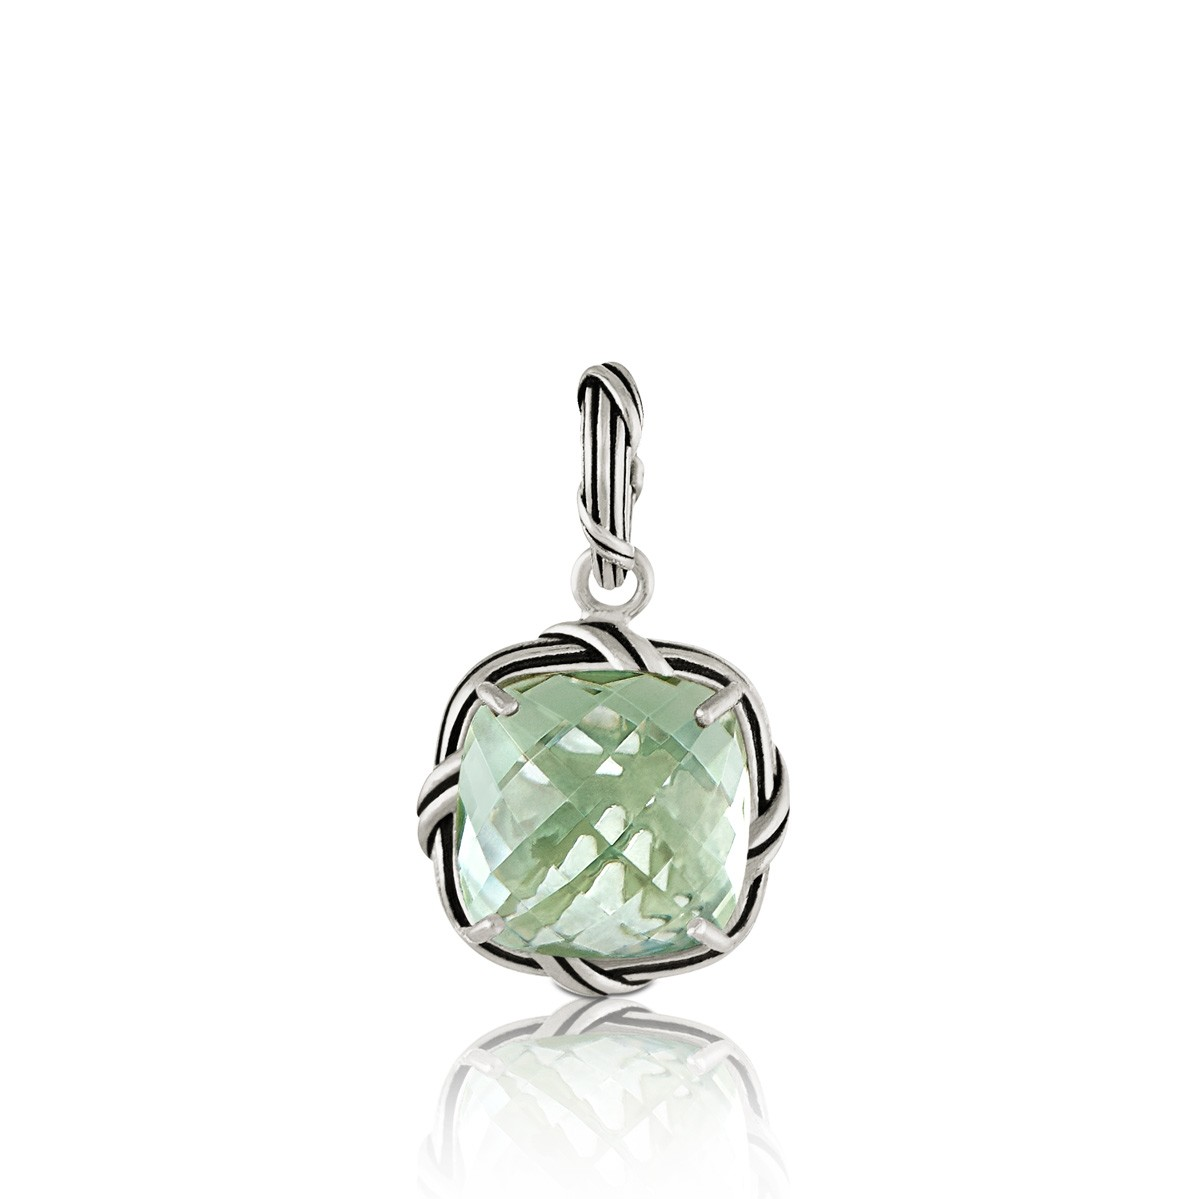 Fantasies Prasiolite Enhancer in sterling silver